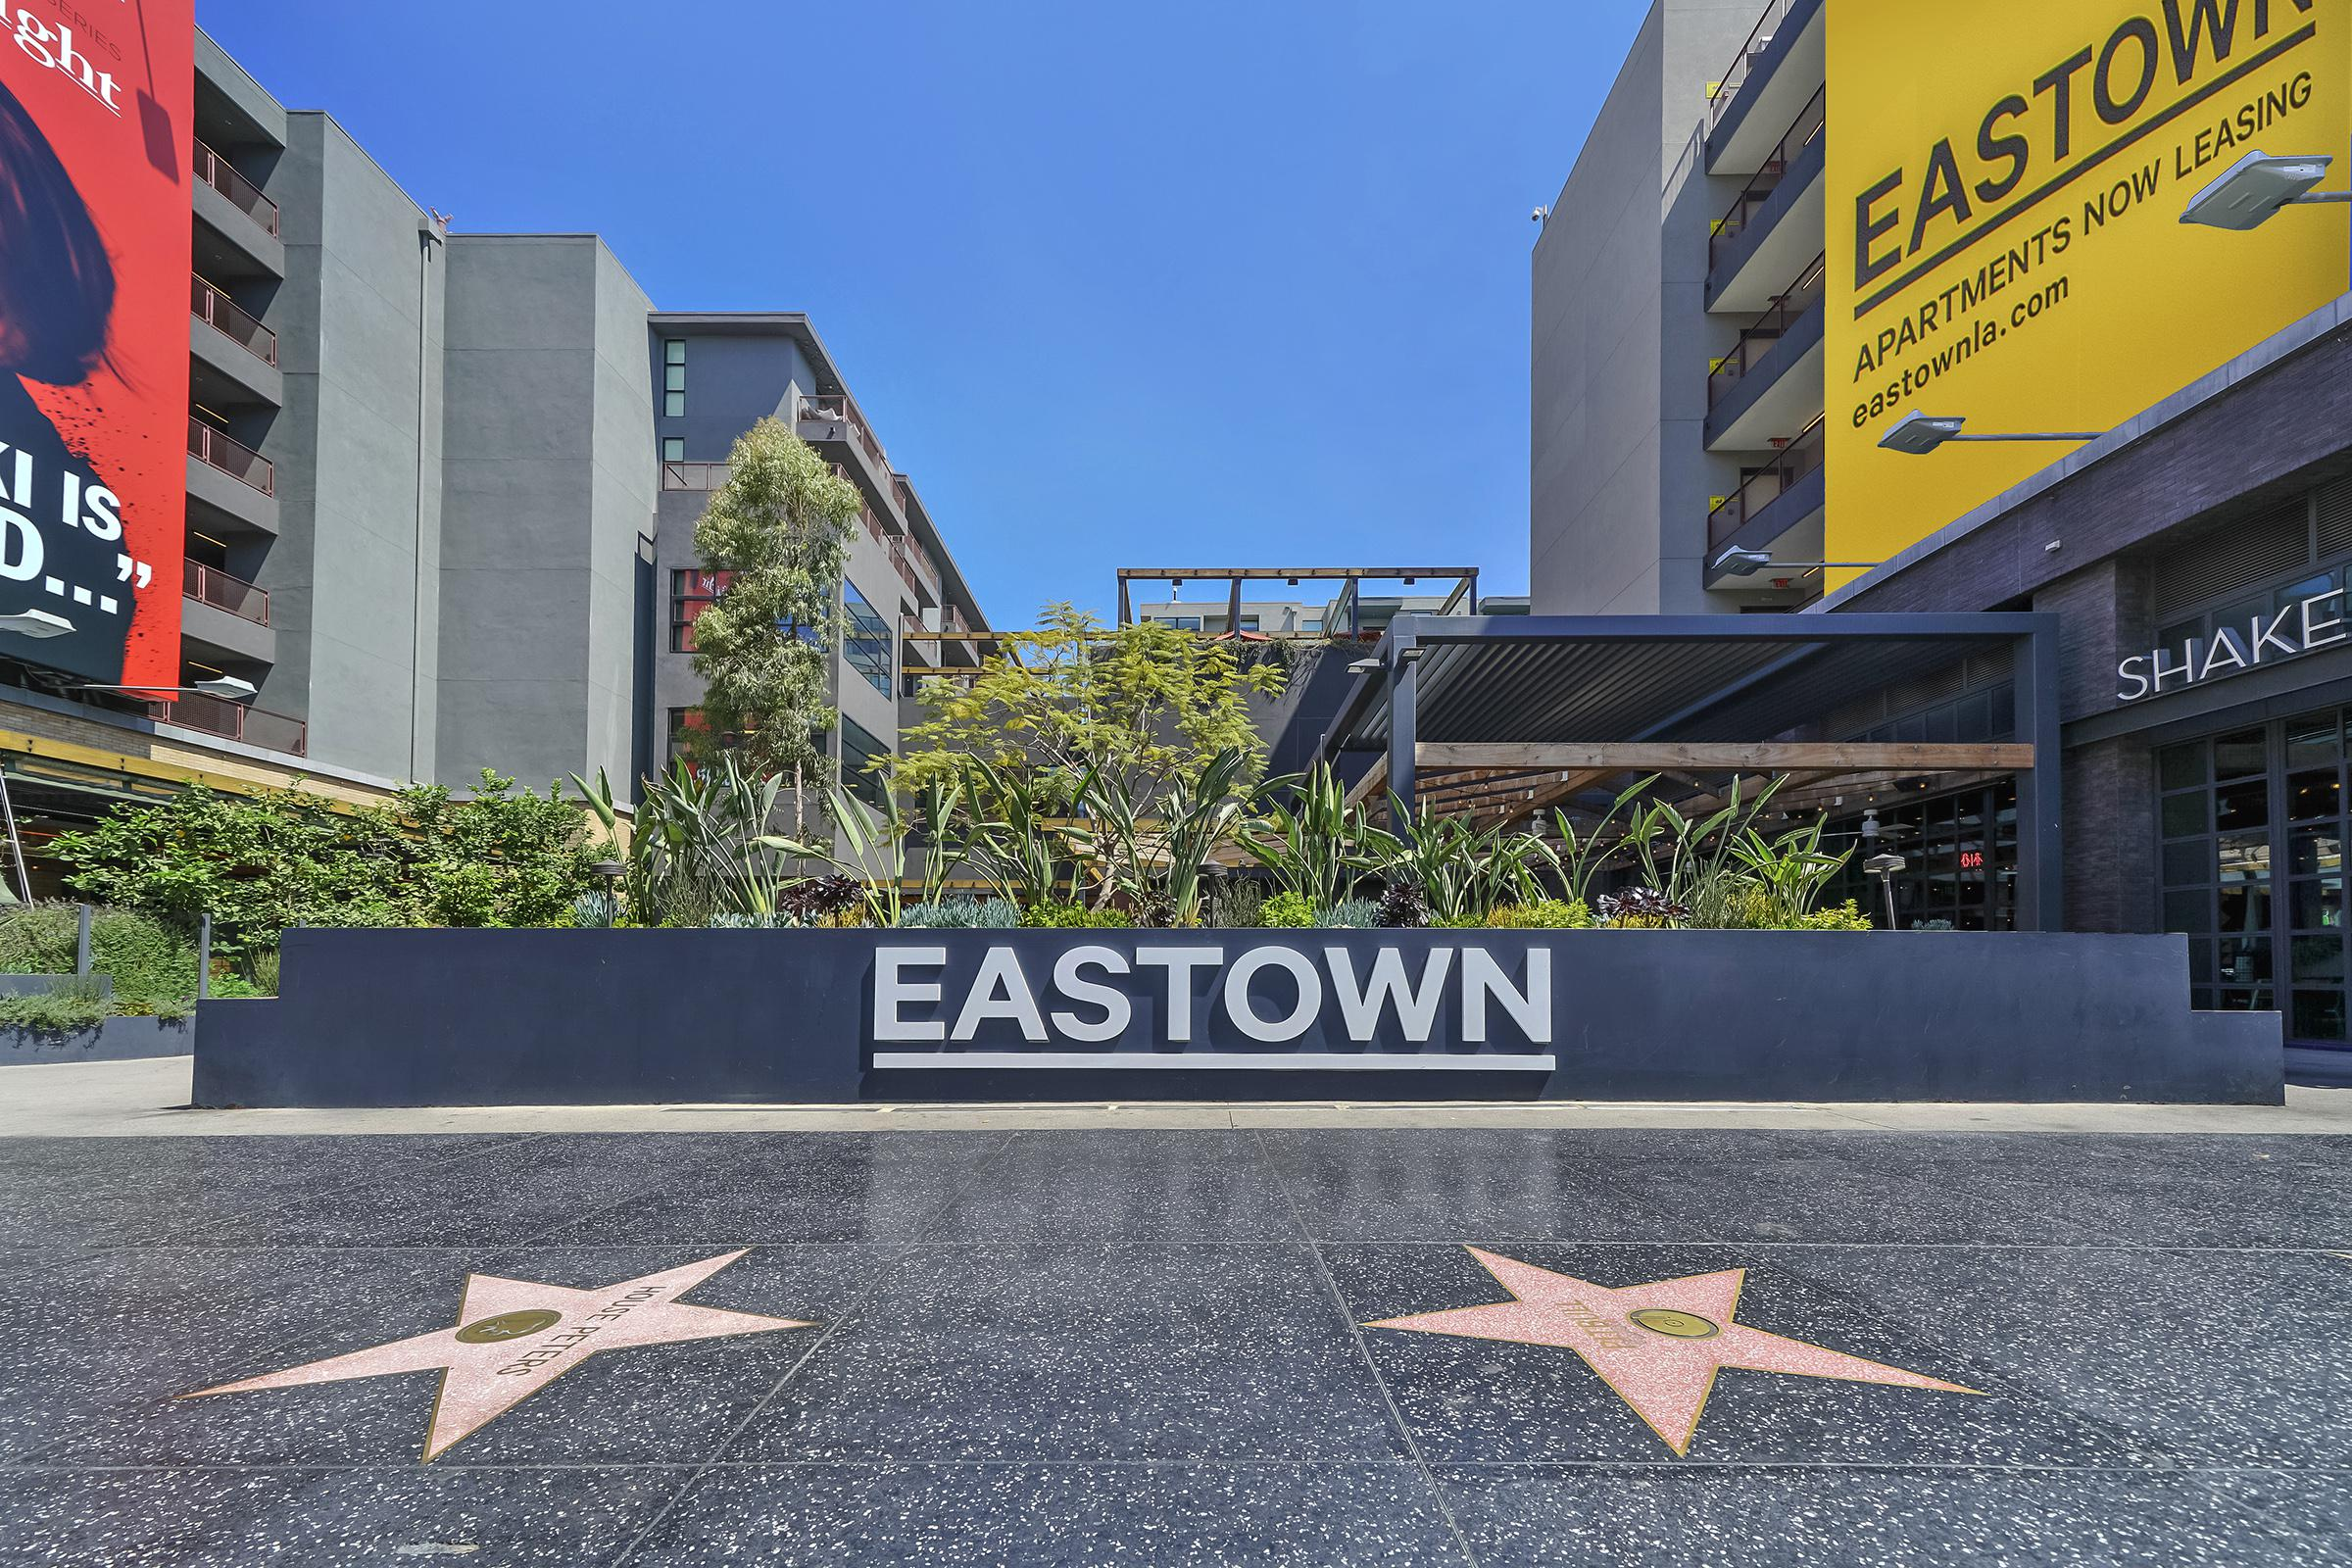 Eastown monument sign